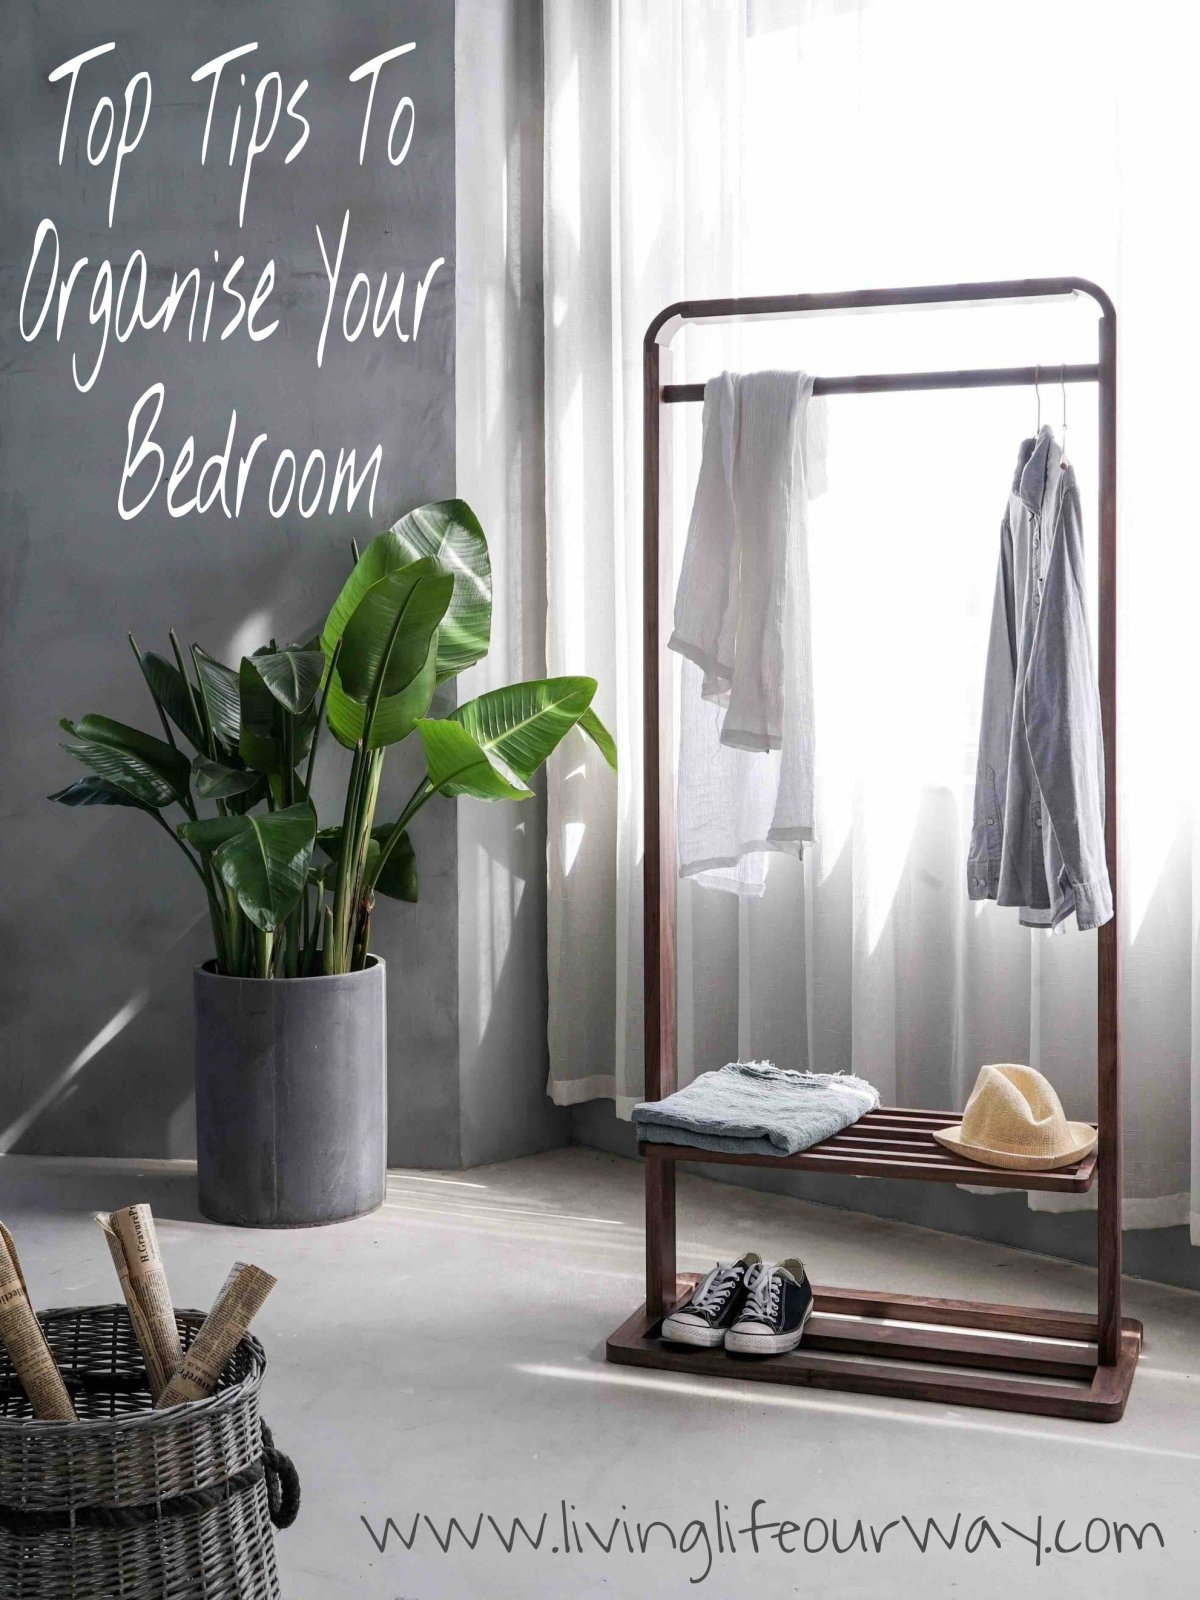 Organise Your Bedroom #StorageForTheWin